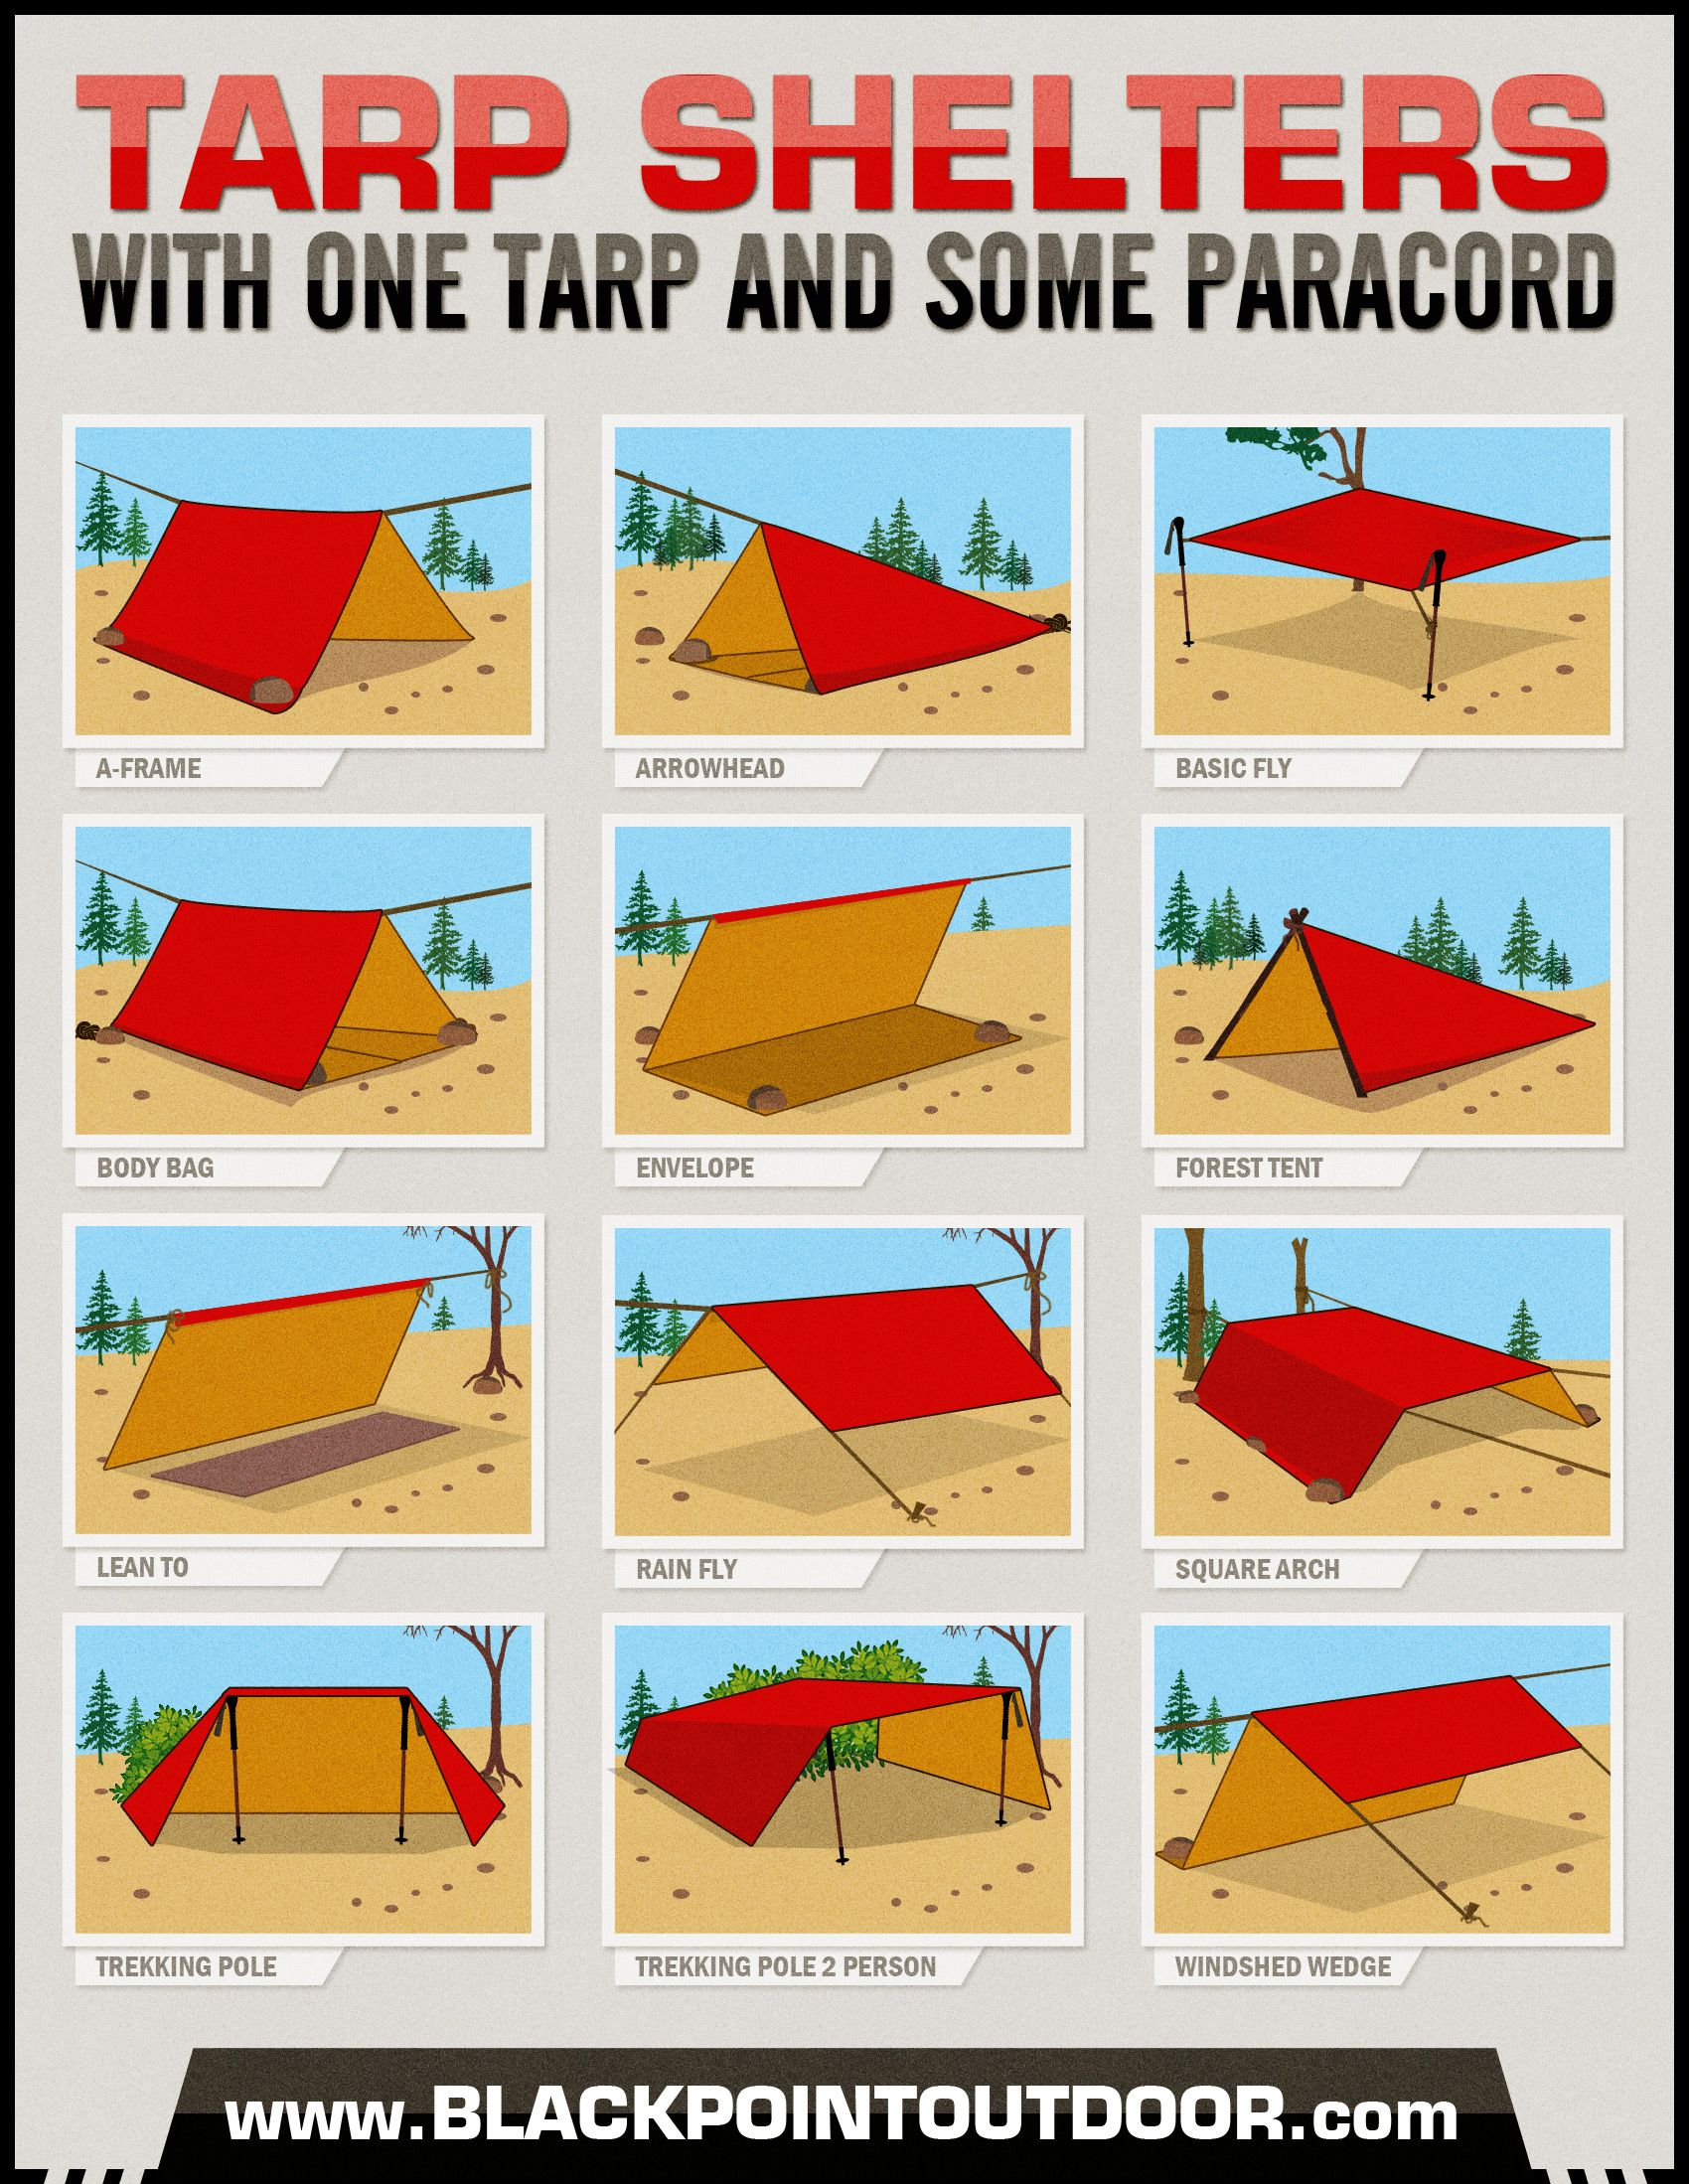 tarp shelters infographic #howto make #shelter from a tarp and